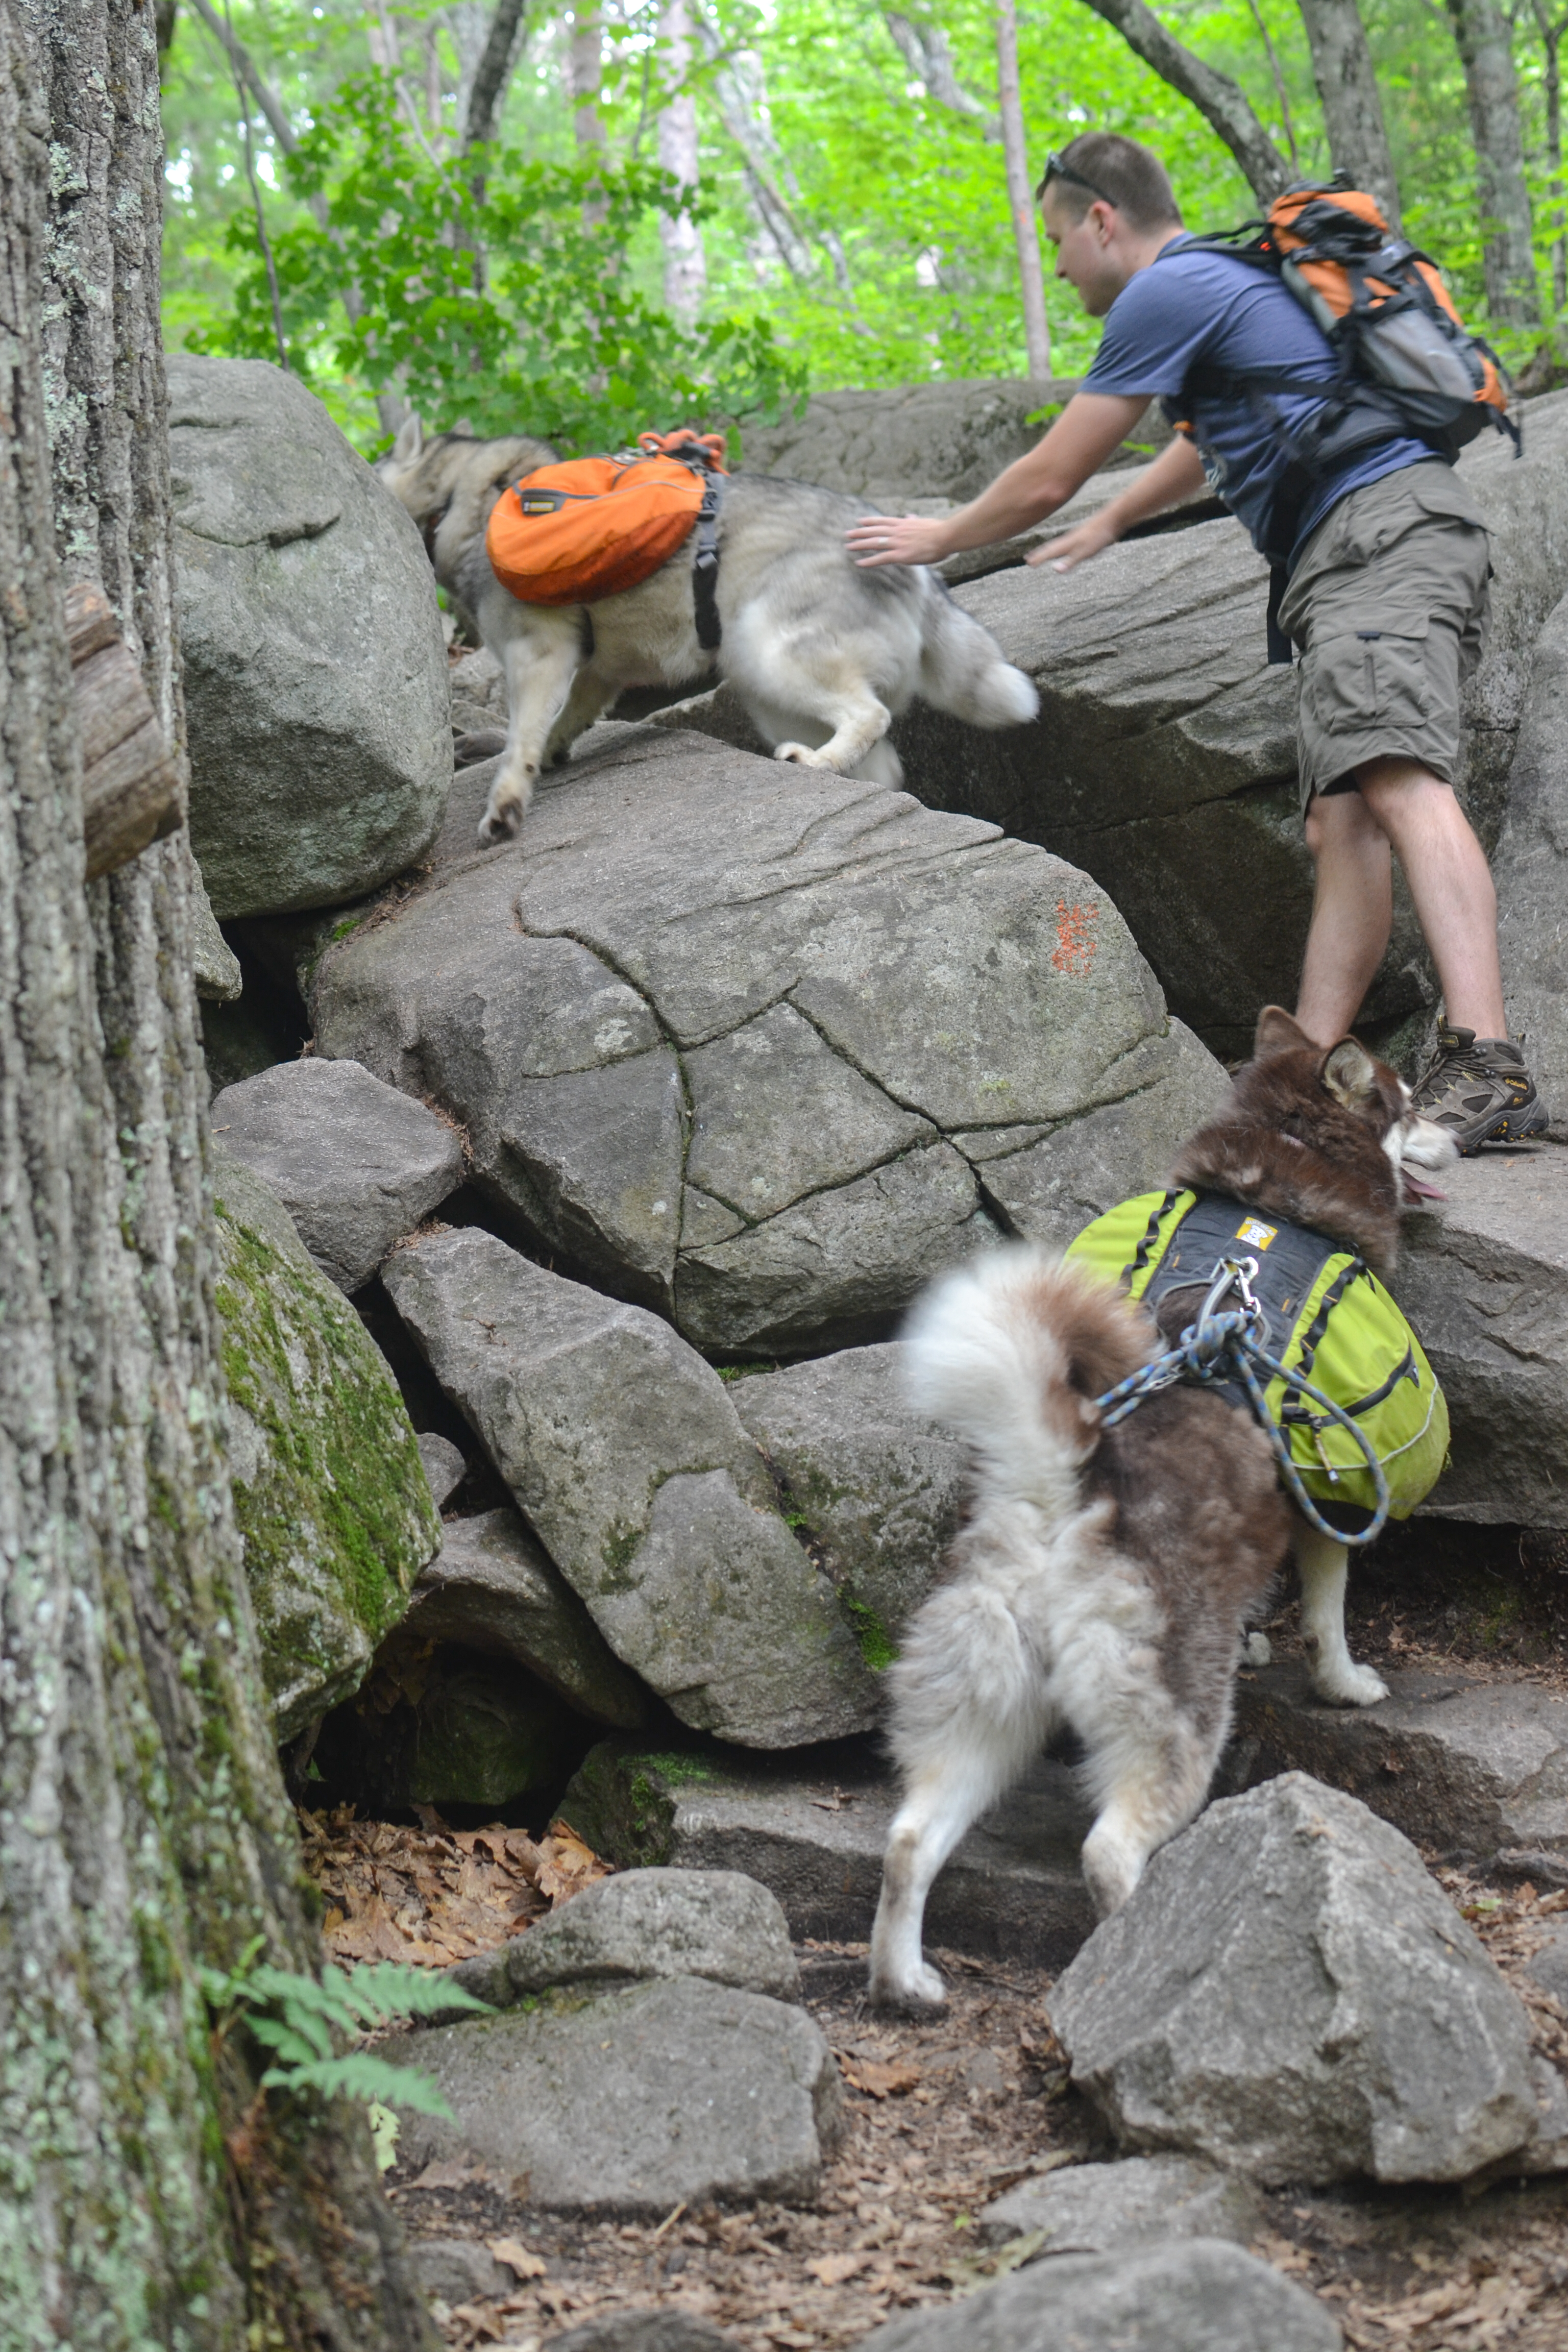 Hiking with Dogs: Mount Major – Alton, NH – Tails from the Trails